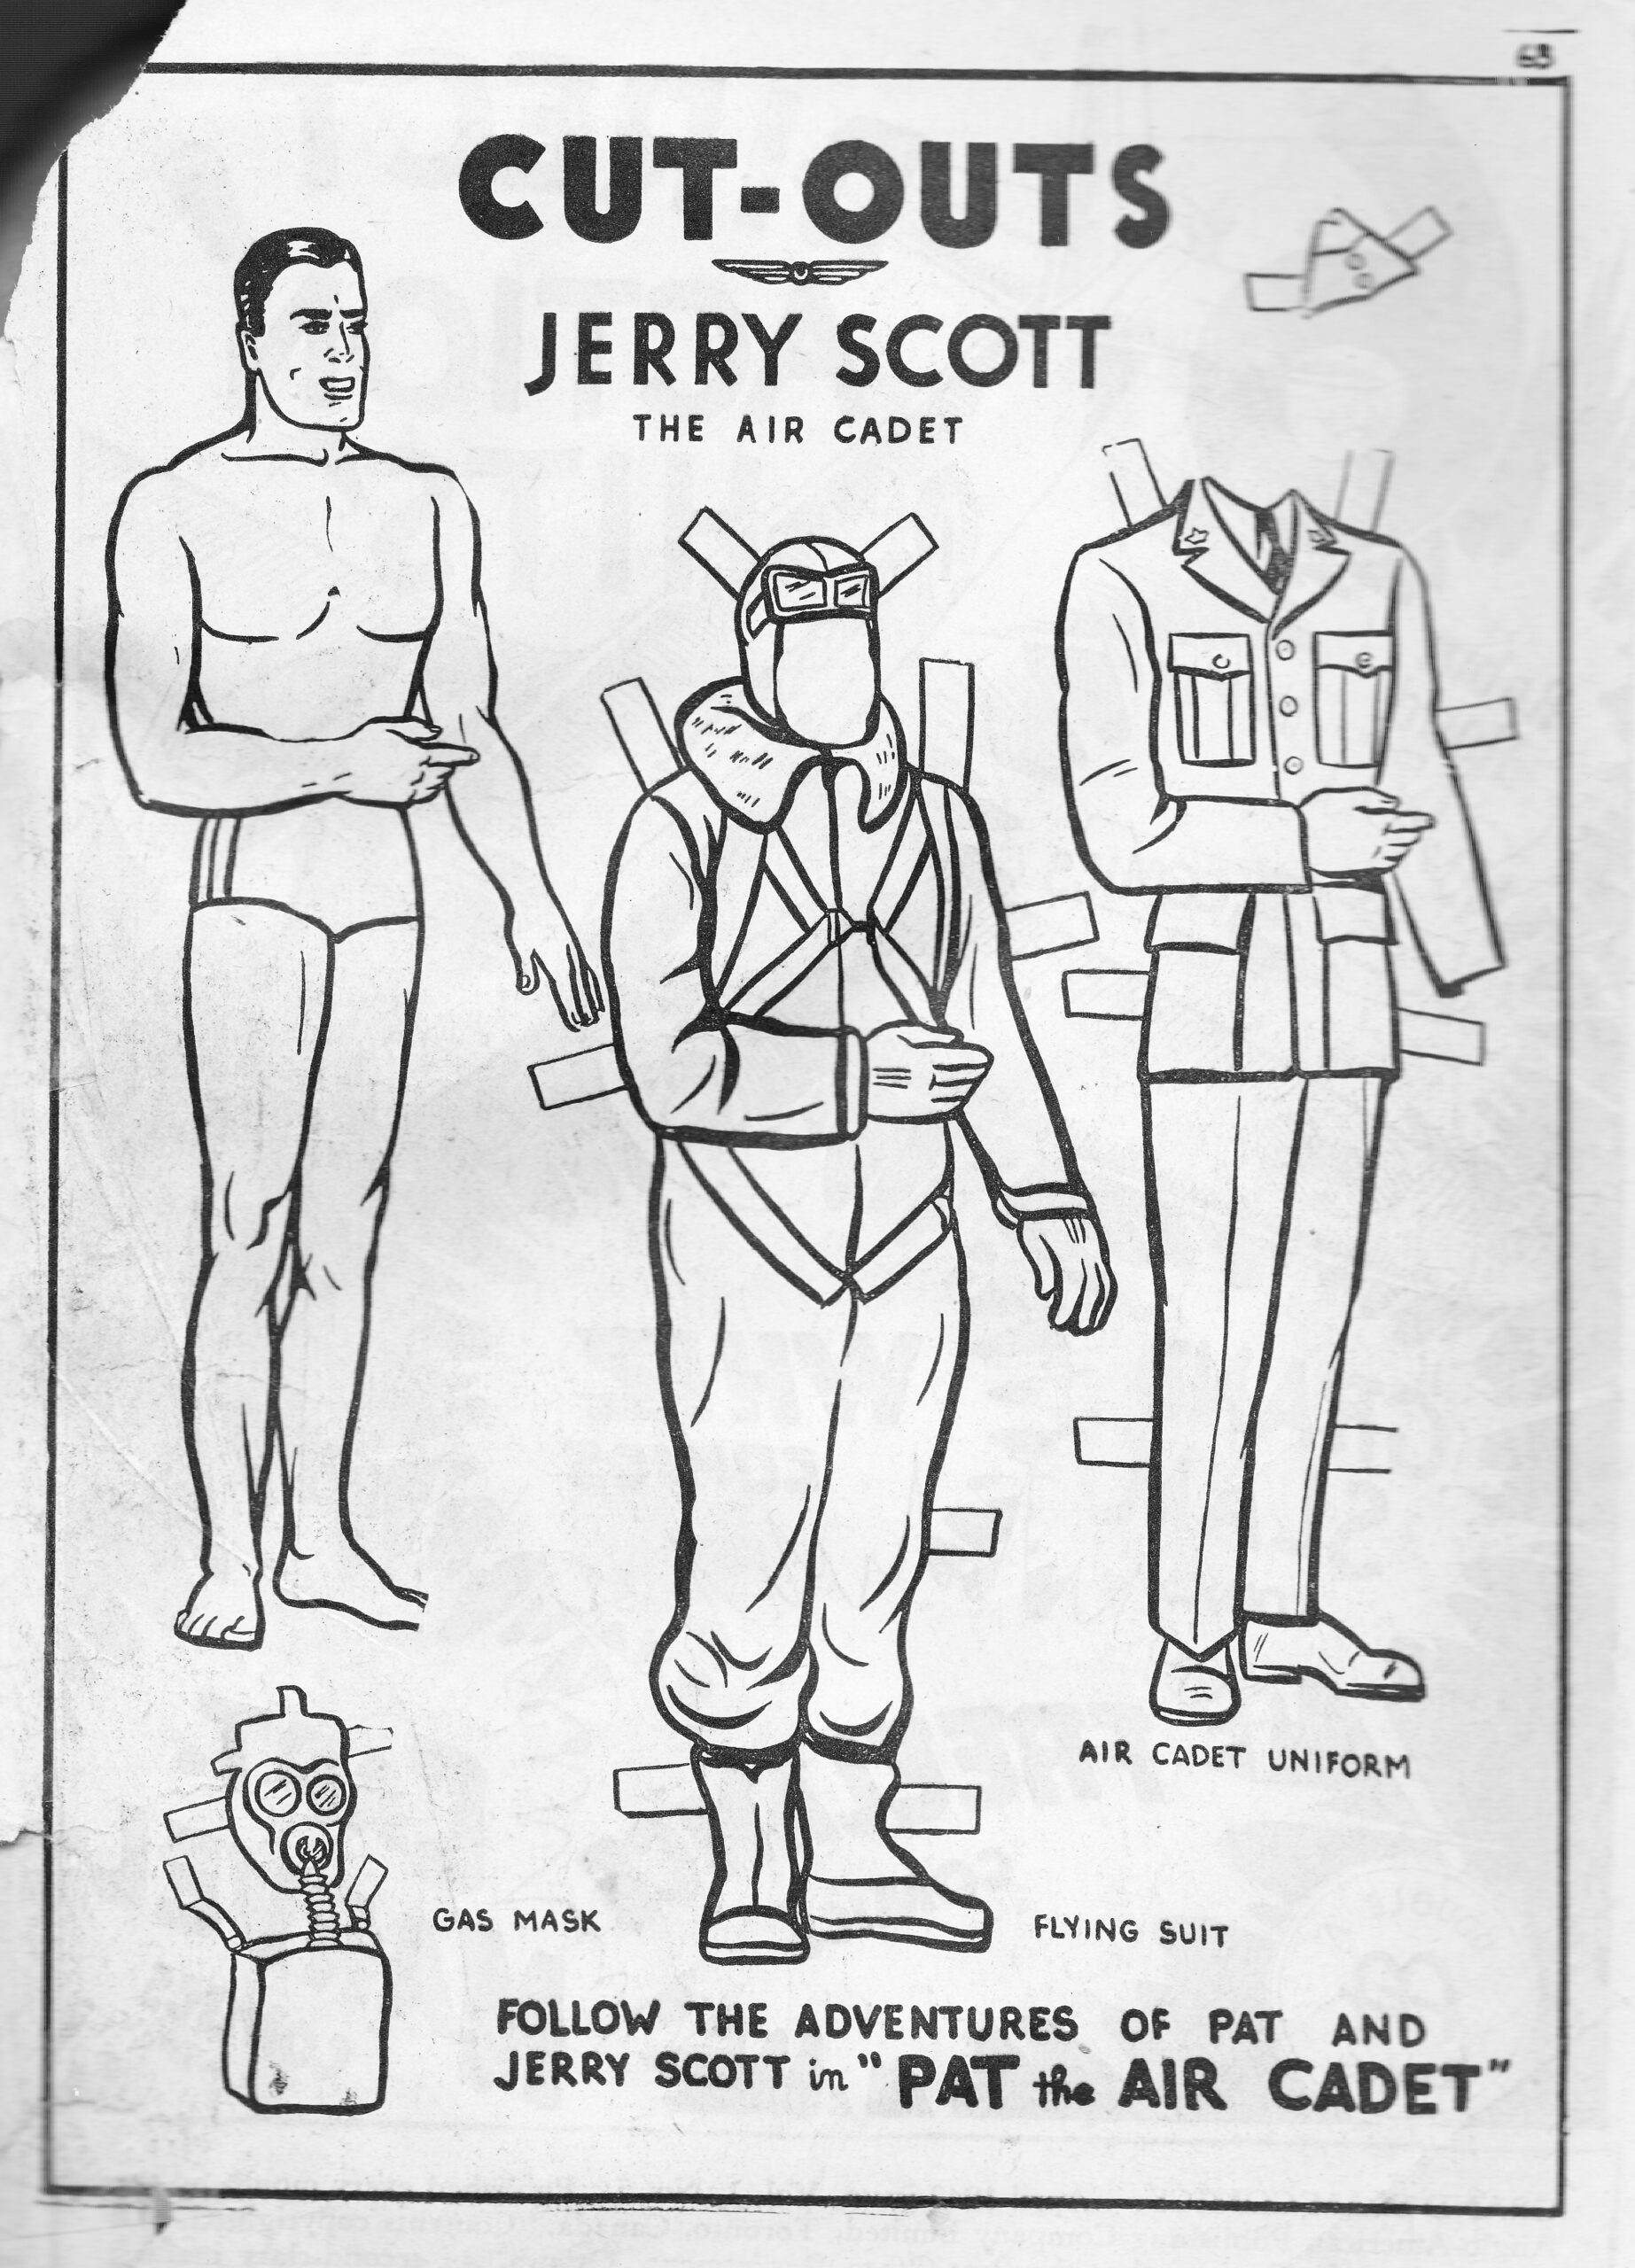 C:\Users\Robert\Documents\CANADIAN CARTOONING ILLUSTRATION and ANIMATION\IMAGE CARTOON P\PAT THE AIR CADET 2 Grand Slam 1-5, Apr 1942.jpg